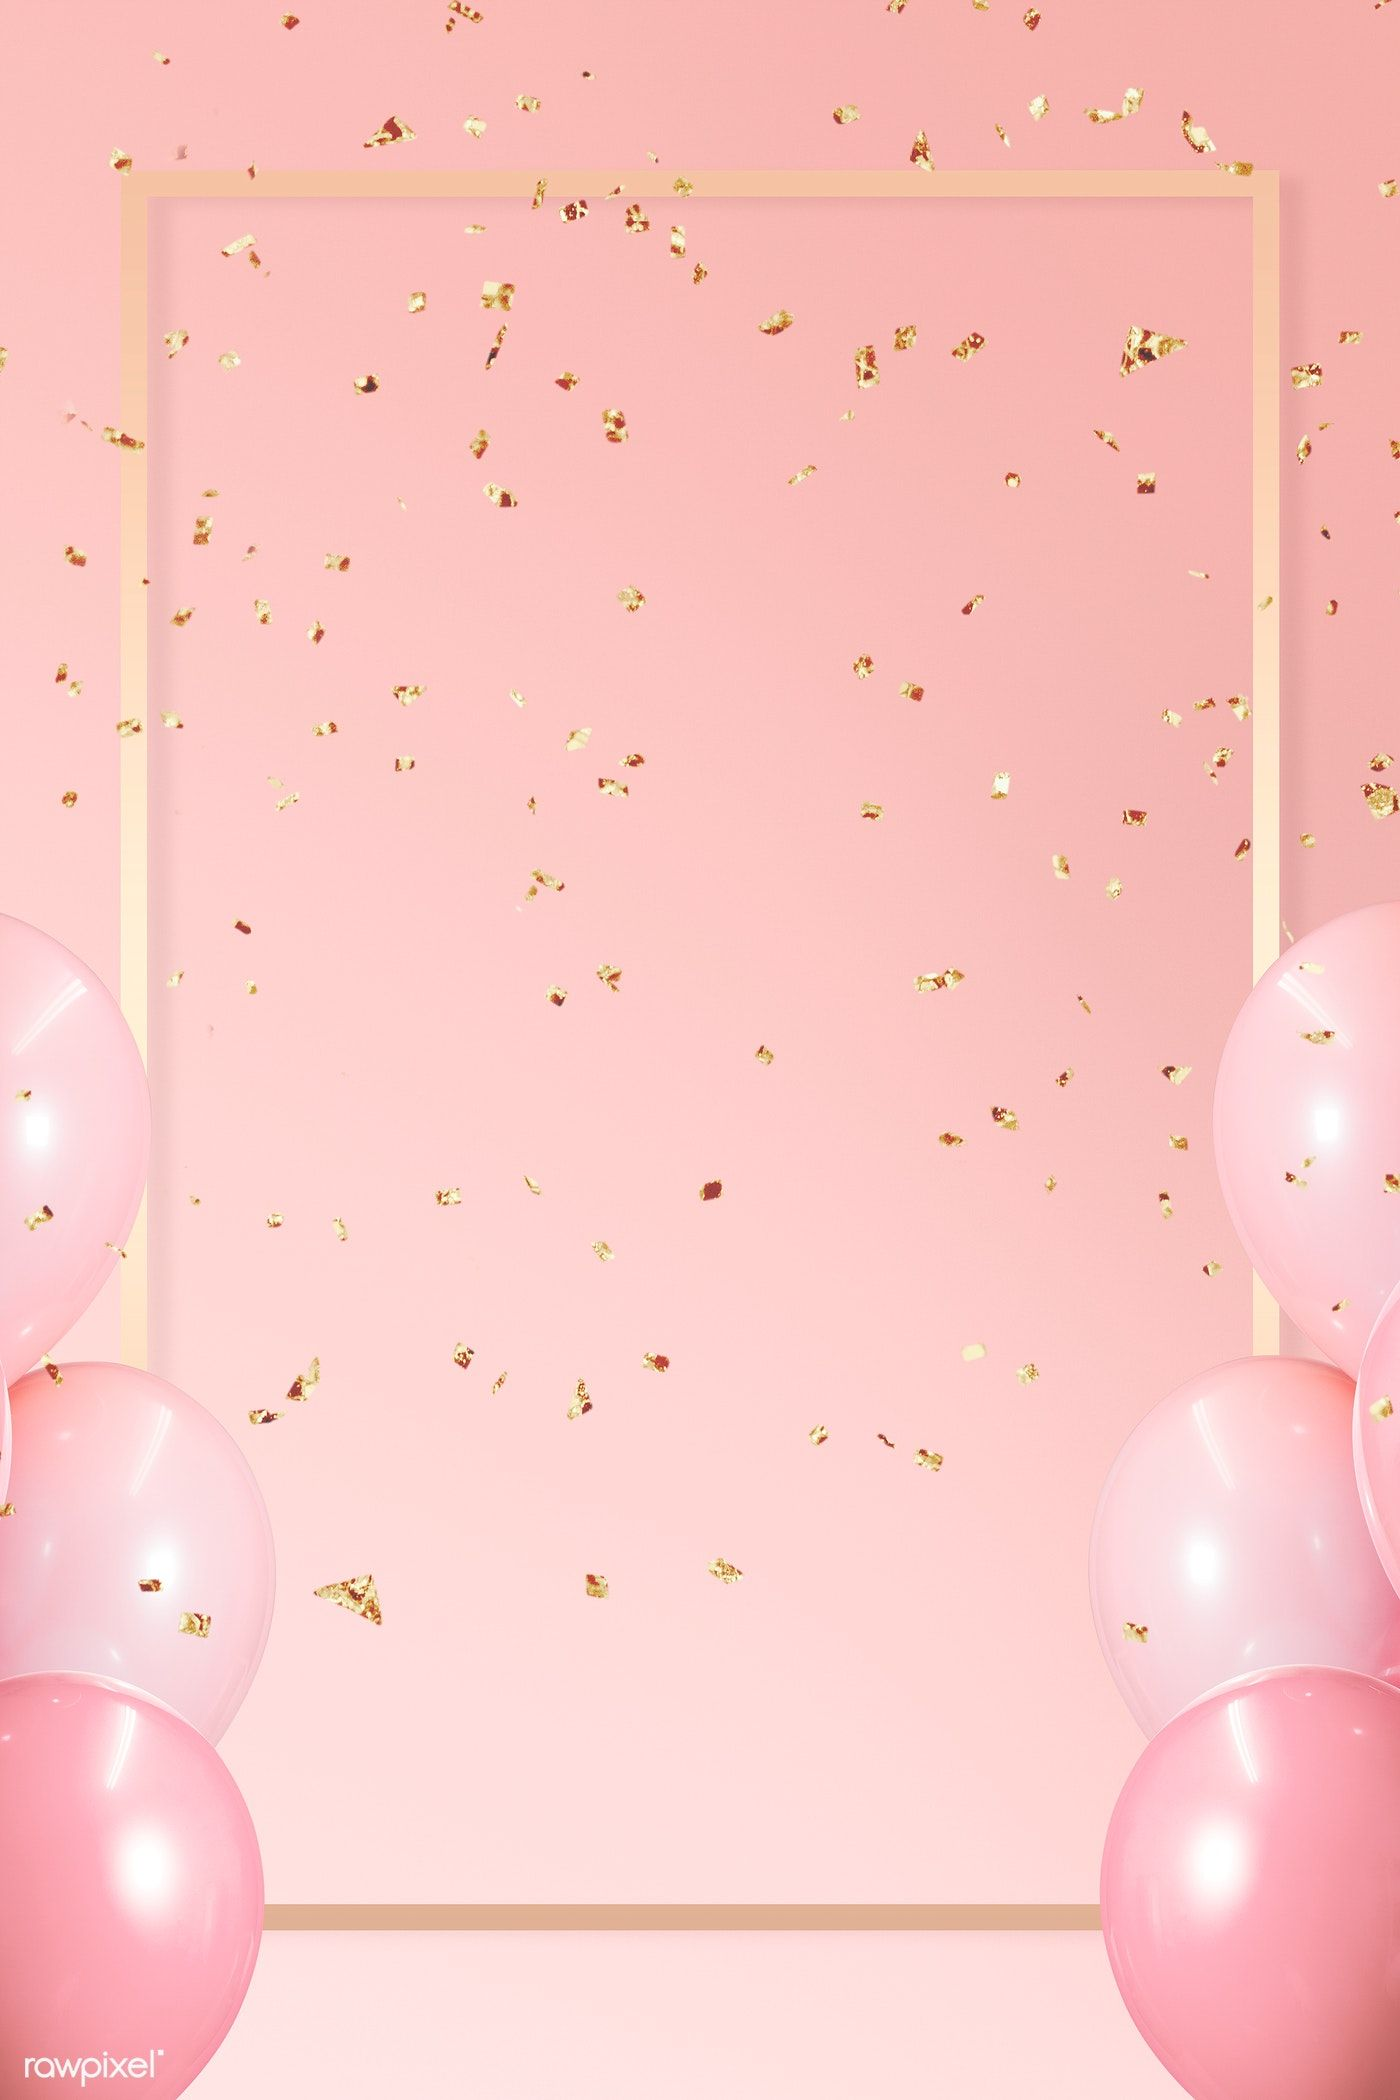 Download Premium Illustration Of Golden Frame Balloons On A Pink Pink Background Birthday Background Wallpaper Happy Birthday Wallpaper